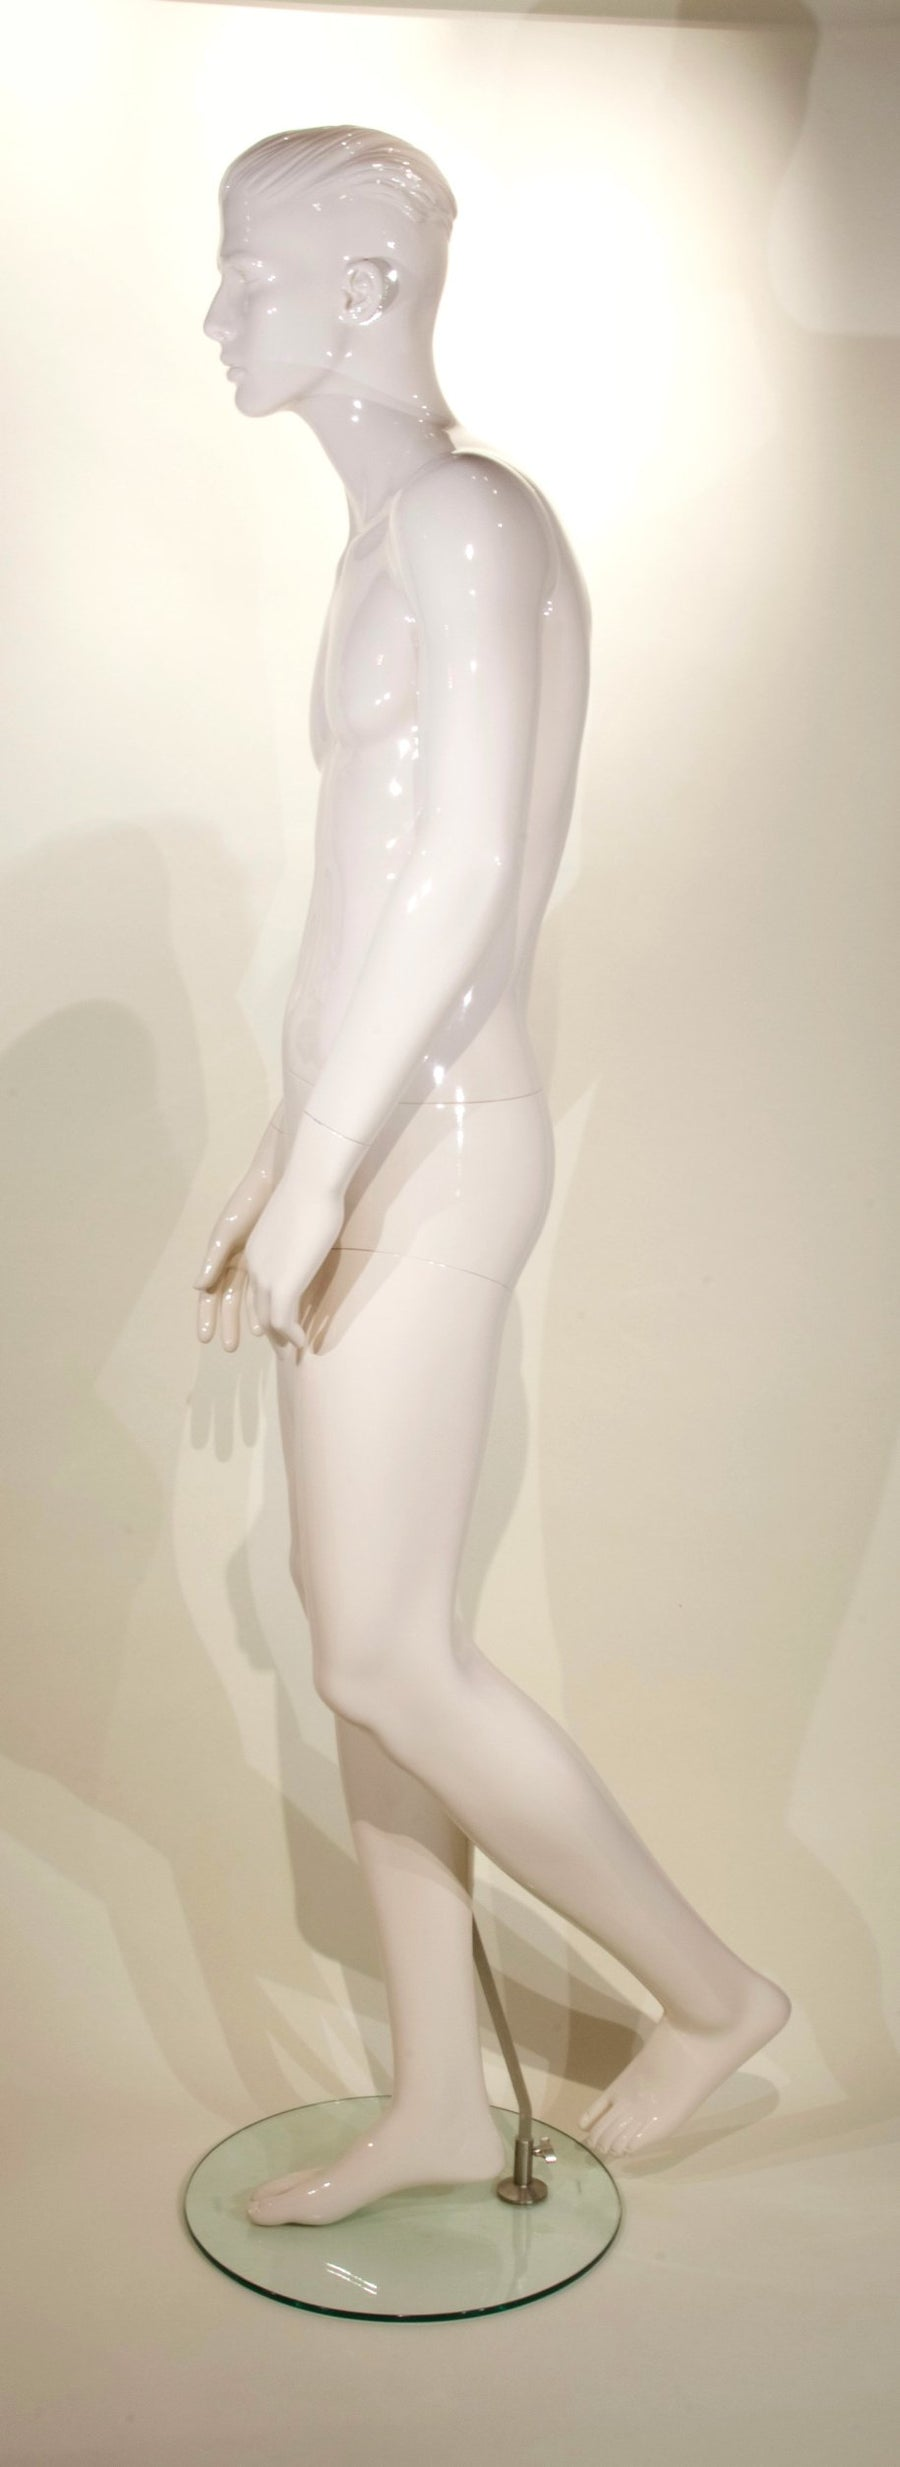 cream white male mannequin with arms relaxed and left hand resting on thigh